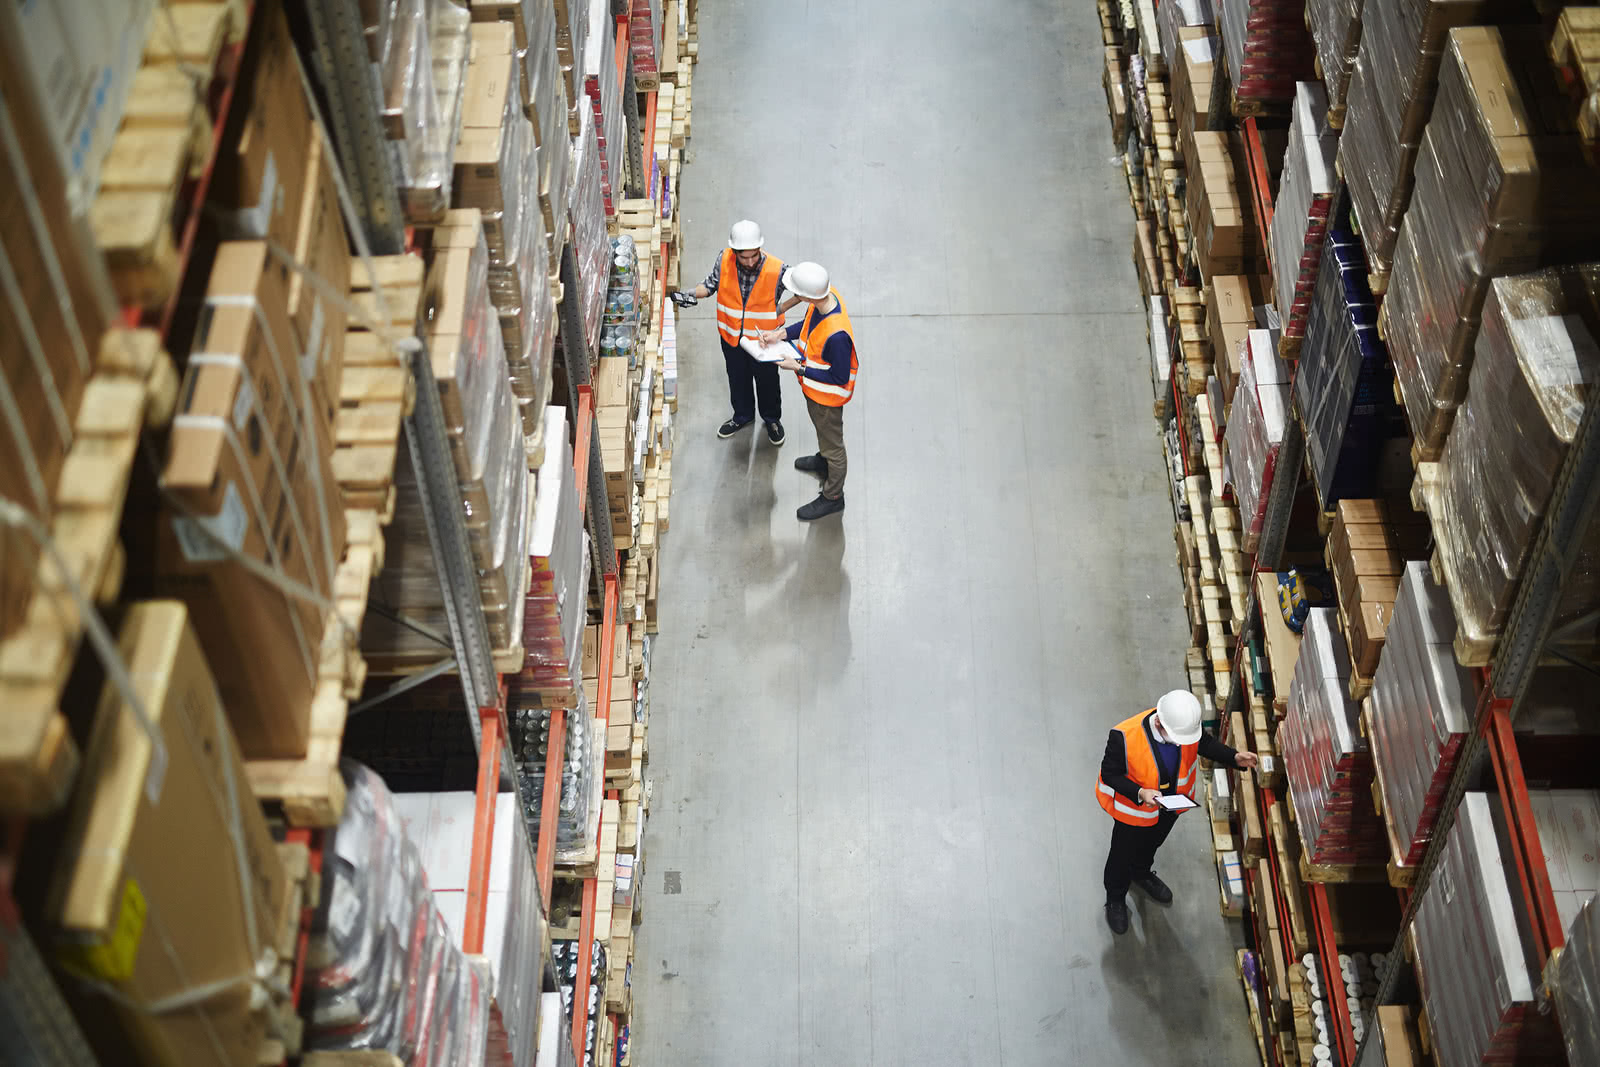 Overhead view of warehouse workers taking stock of their inventory